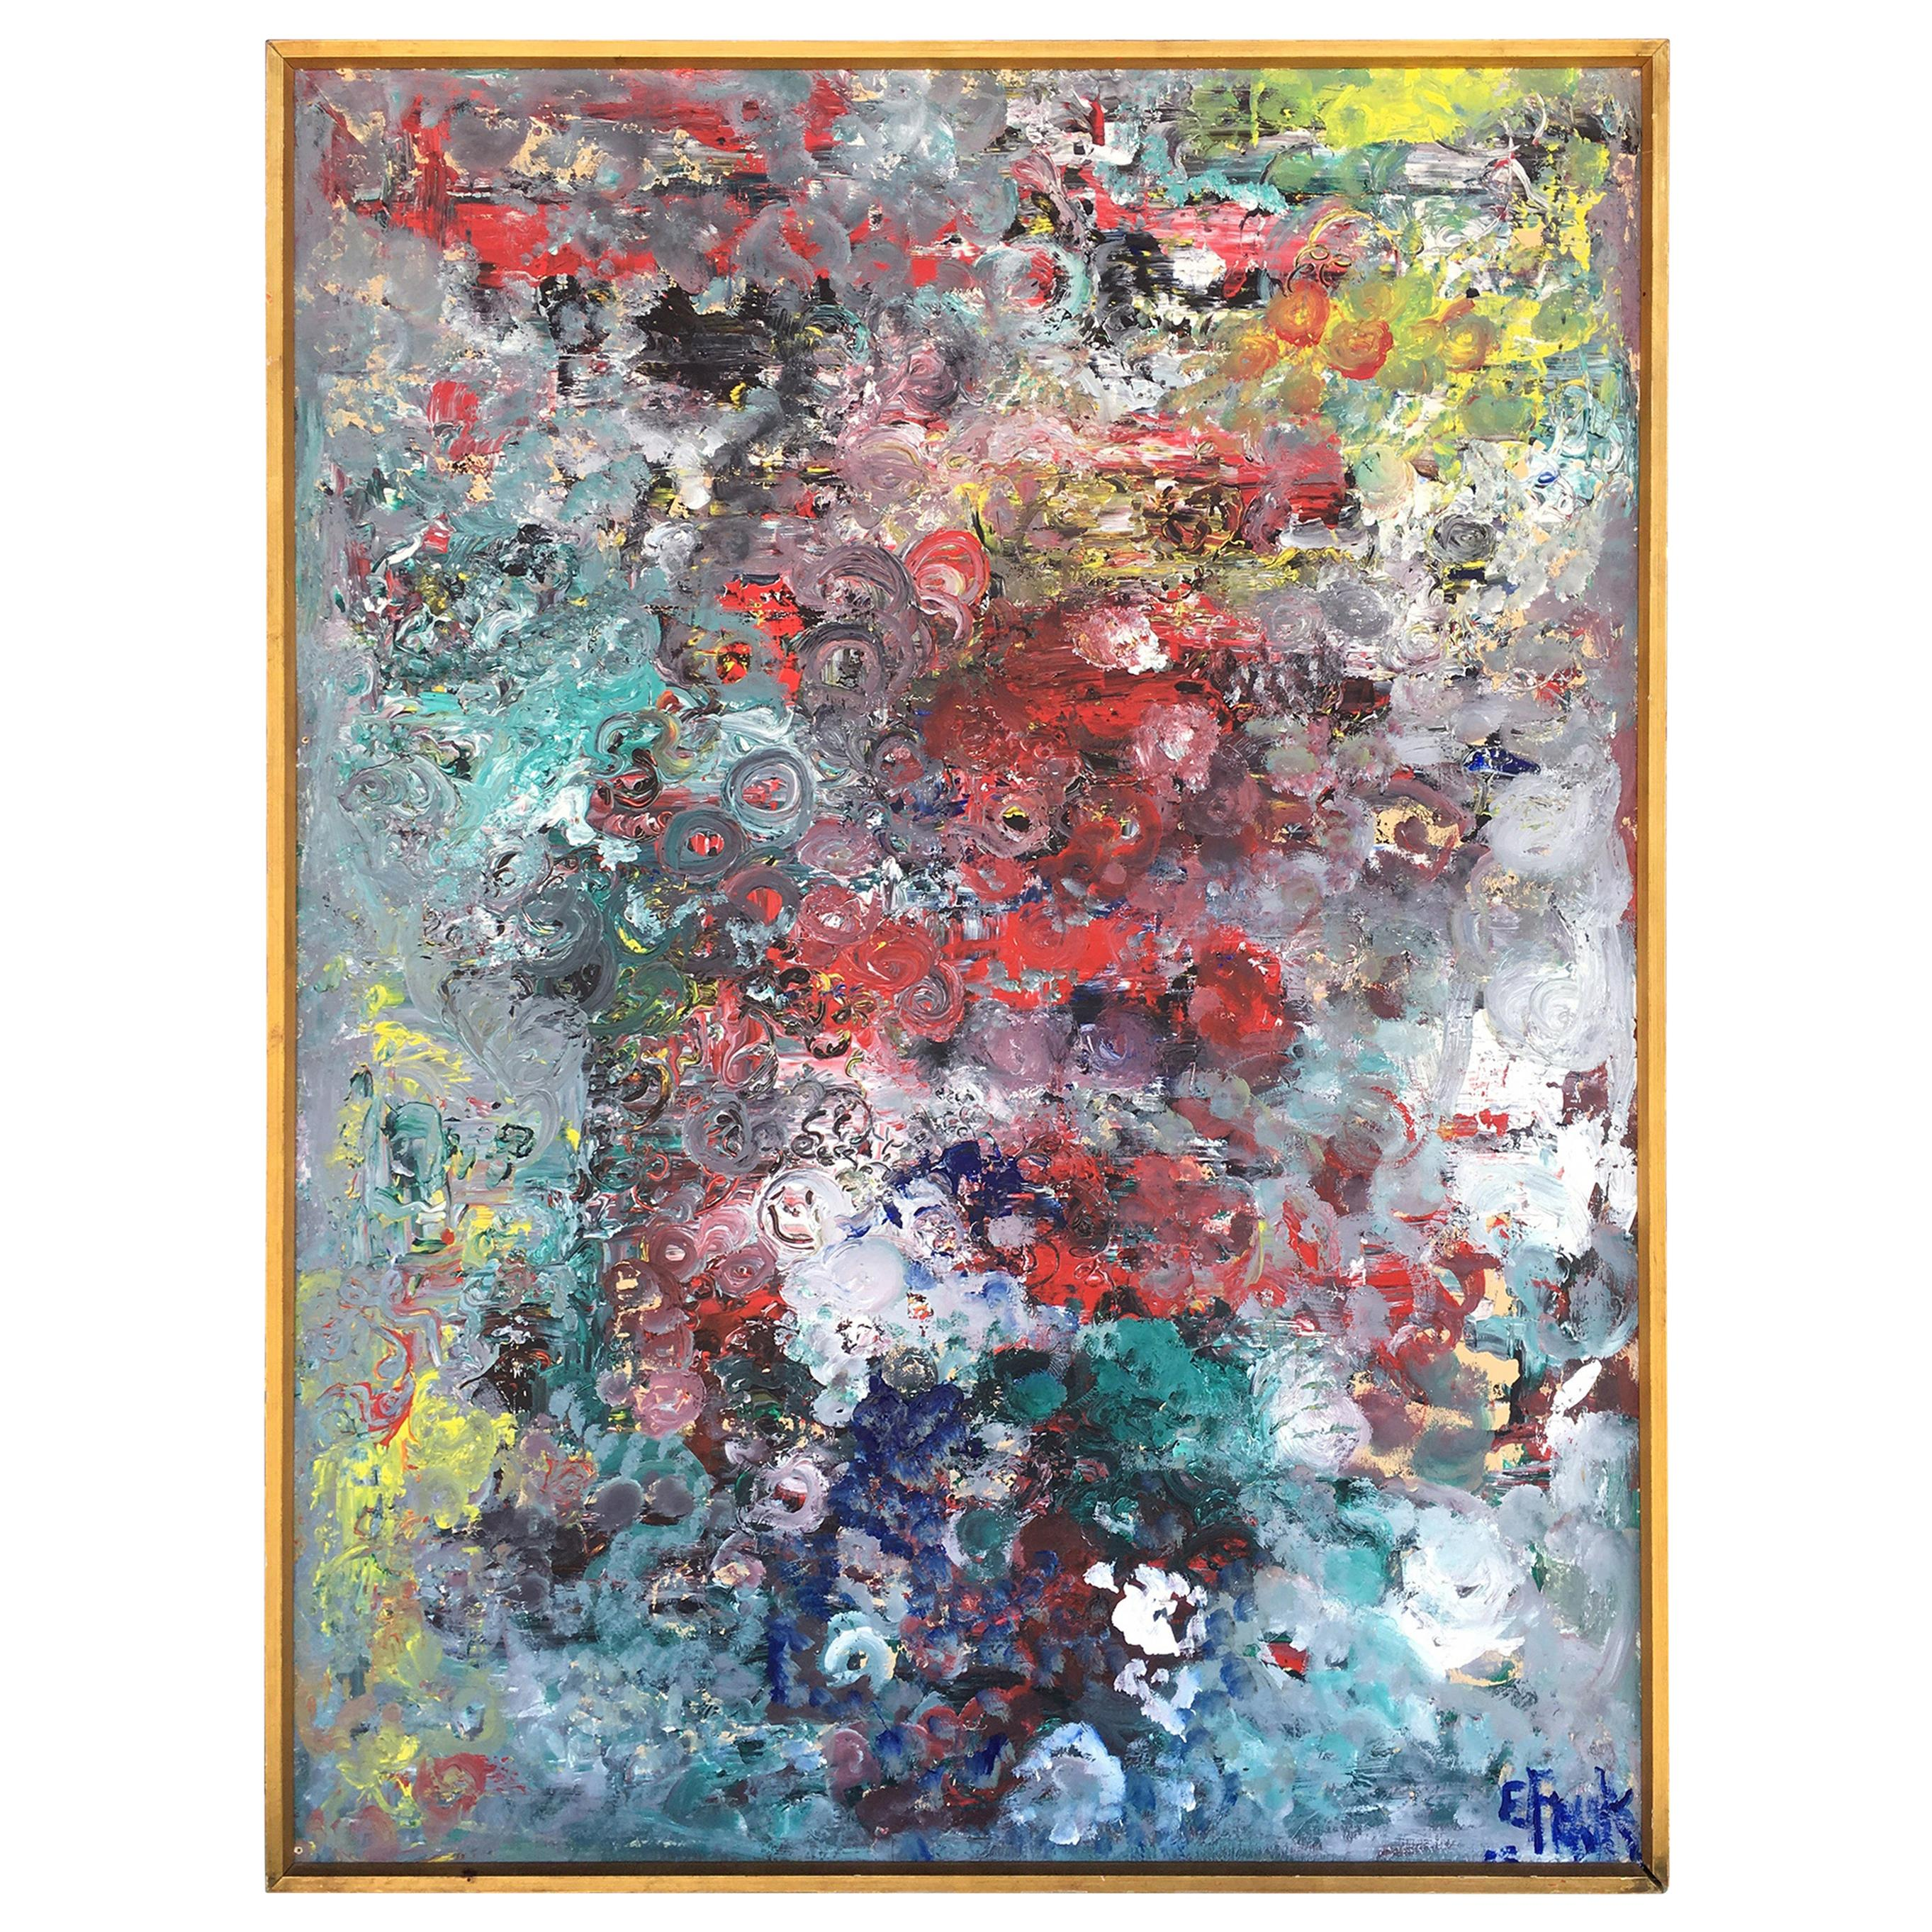 Muticolored Midcentury Abstract Painting by E. Frank